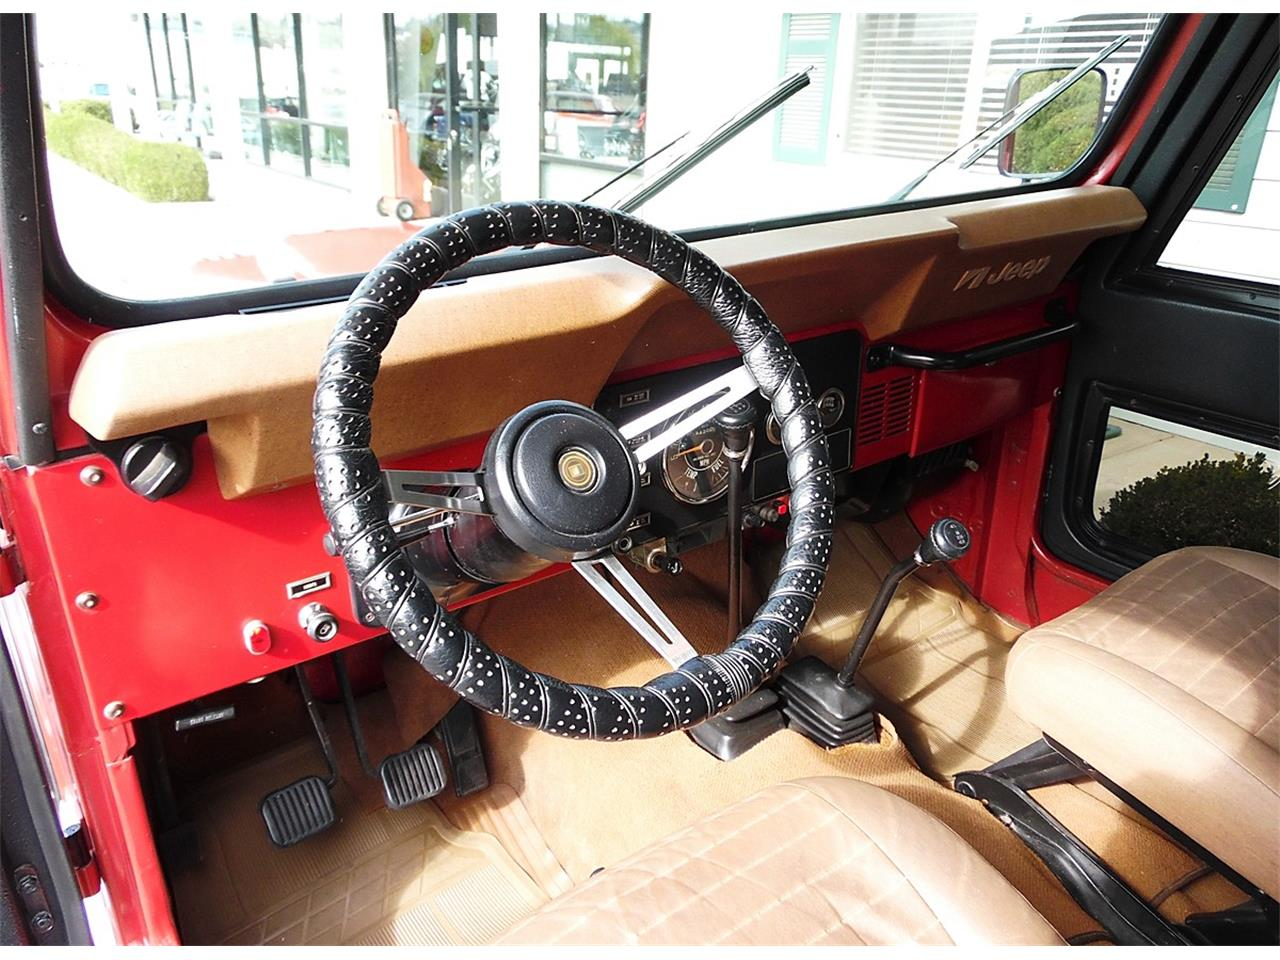 Large Picture of '80 Jeep CJ5 located in Redlands California - $10,995.00 - OYIZ